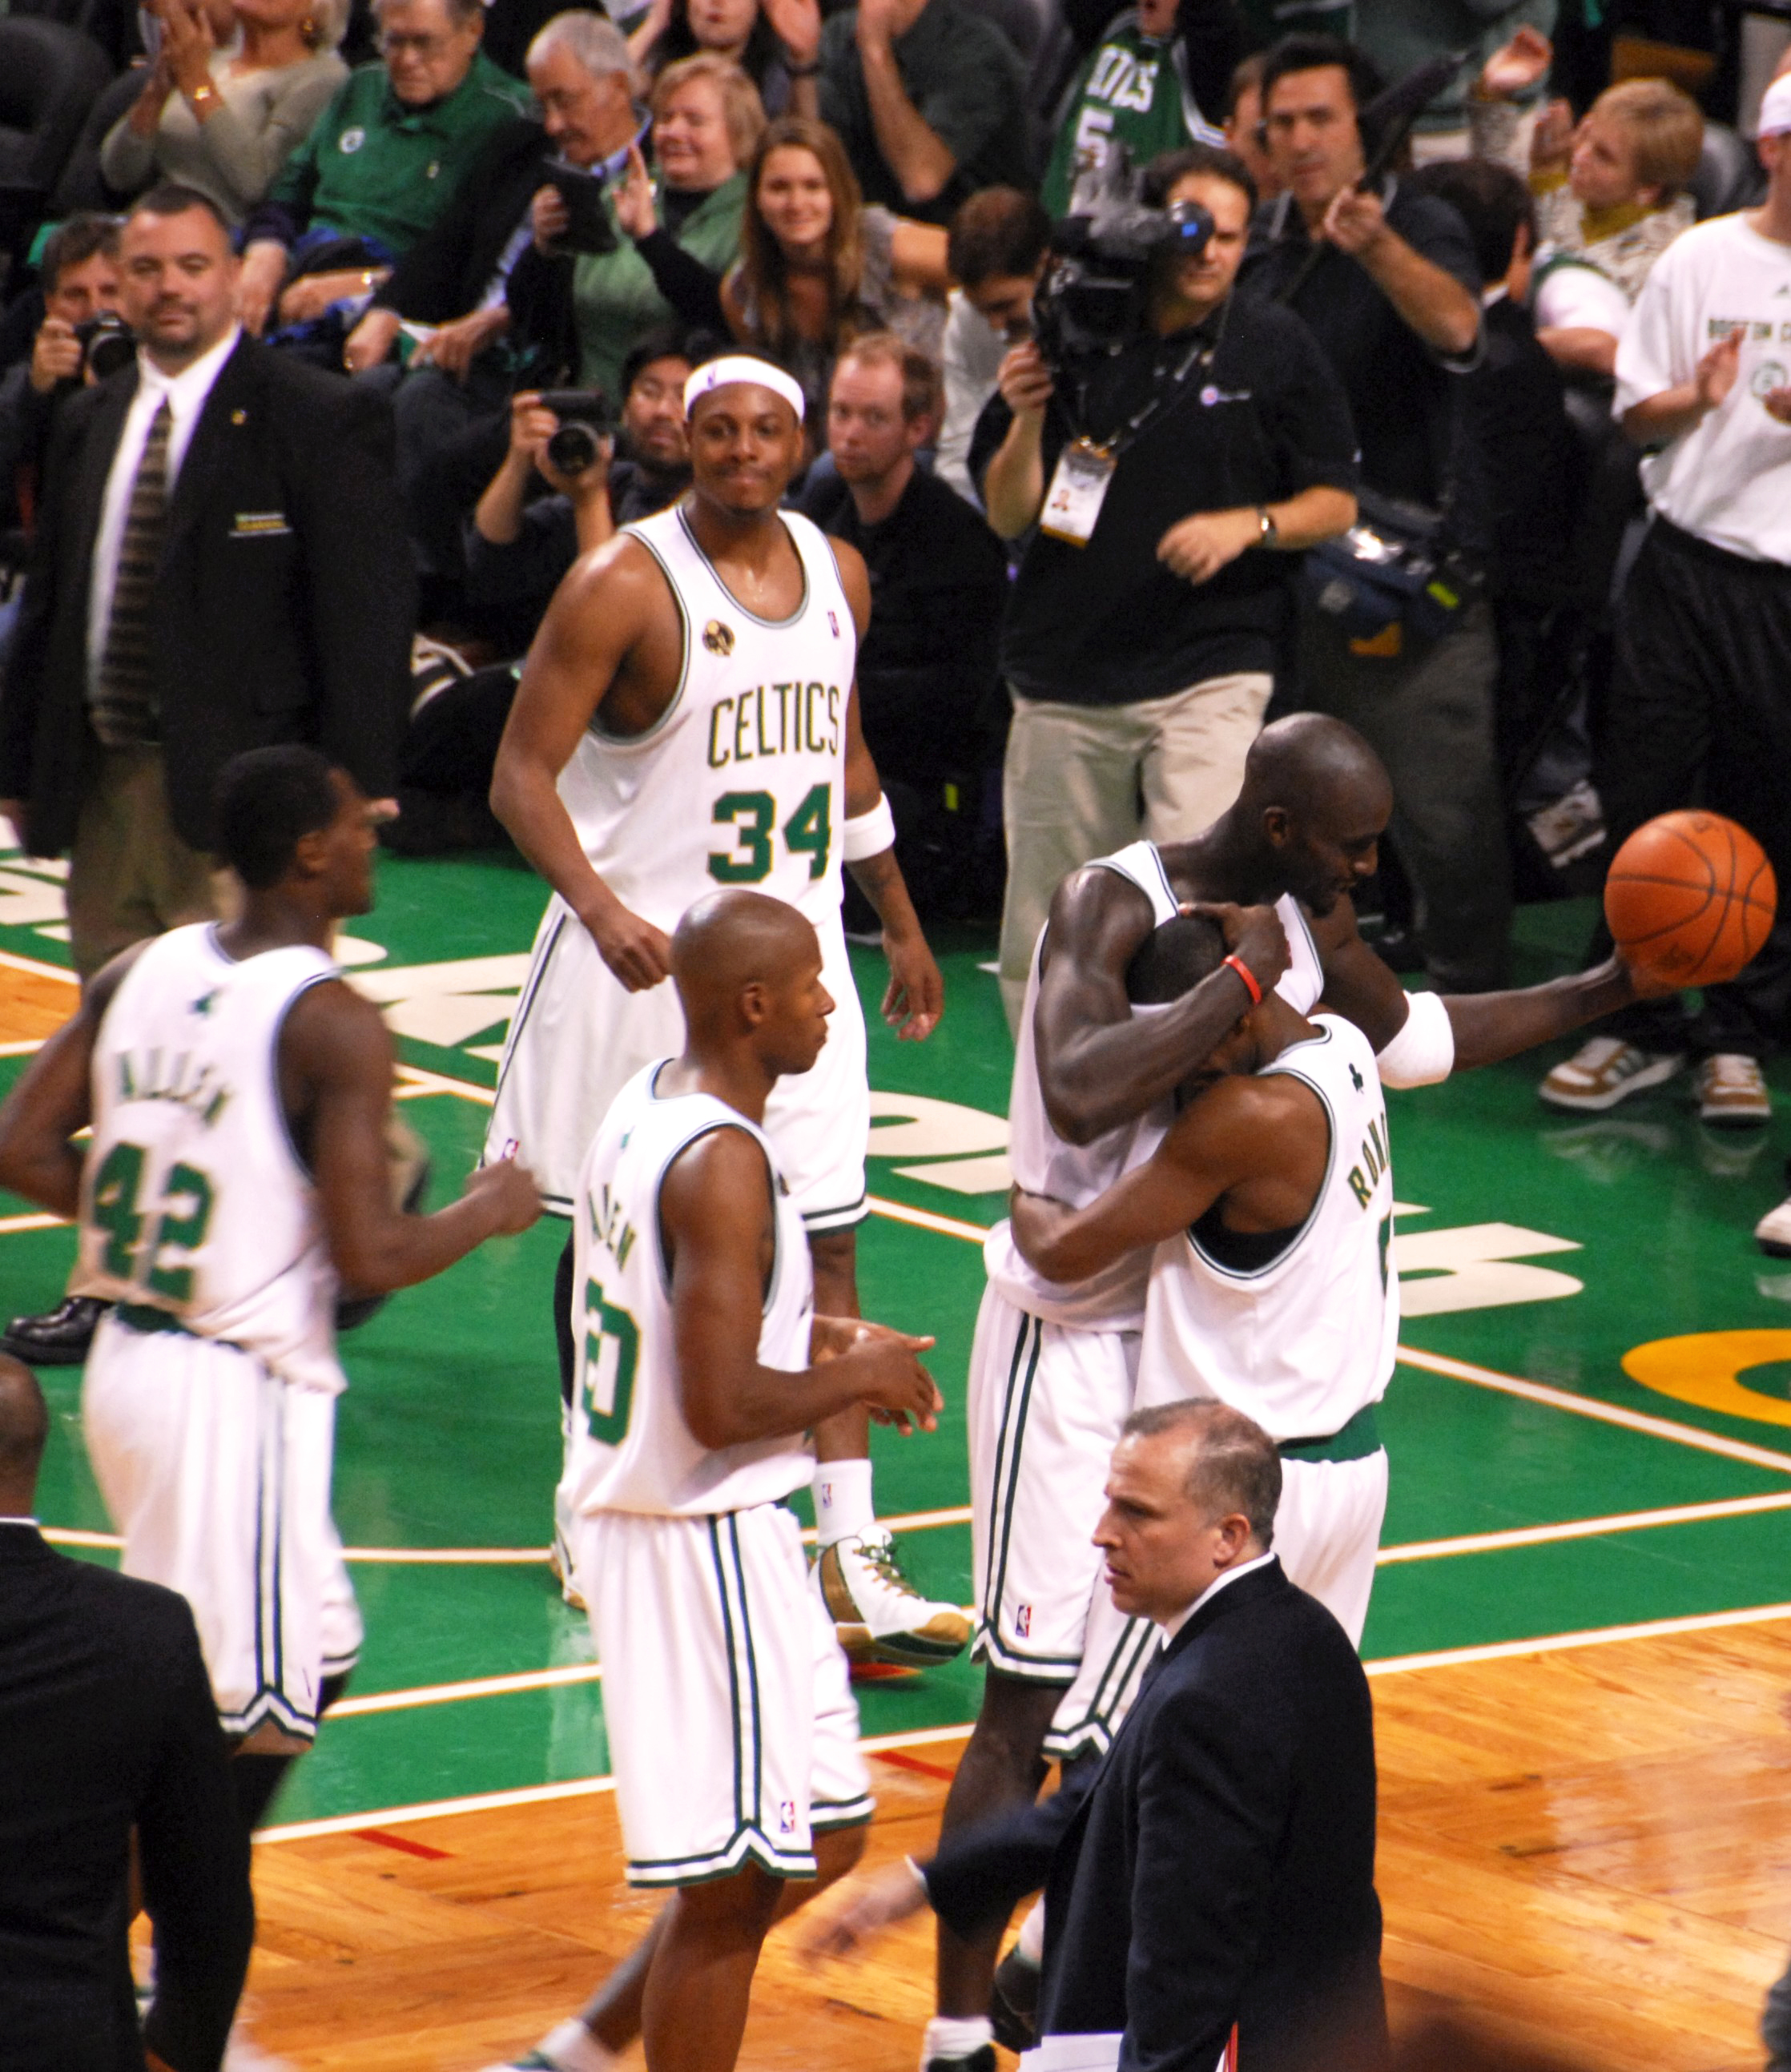 File:Celtics at Tip Off 2008.jpg - Wikimedia Commons